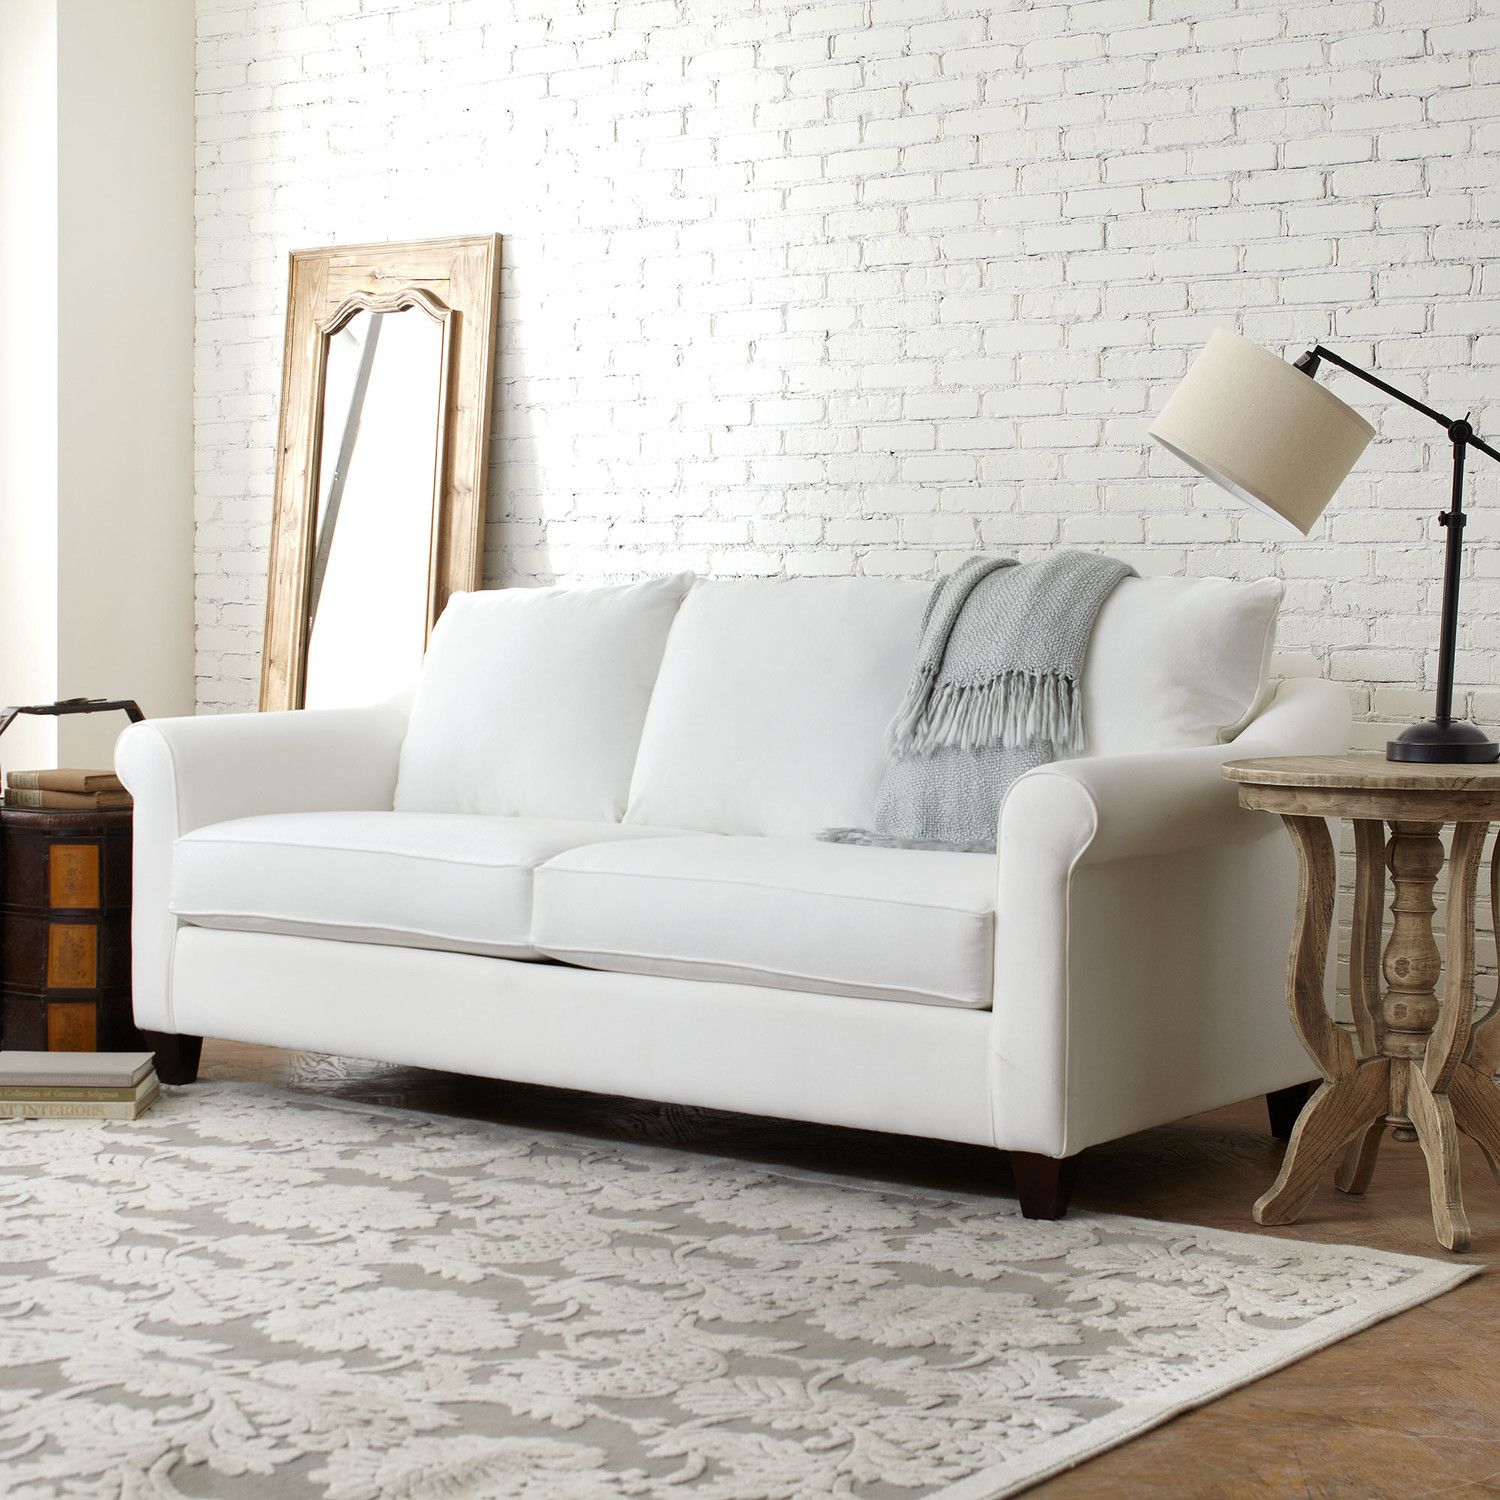 Brooke sofa a timeless silhouette constructed of kiln dried lumber the simple lines of the brooke sofa offer an easy update to every living room